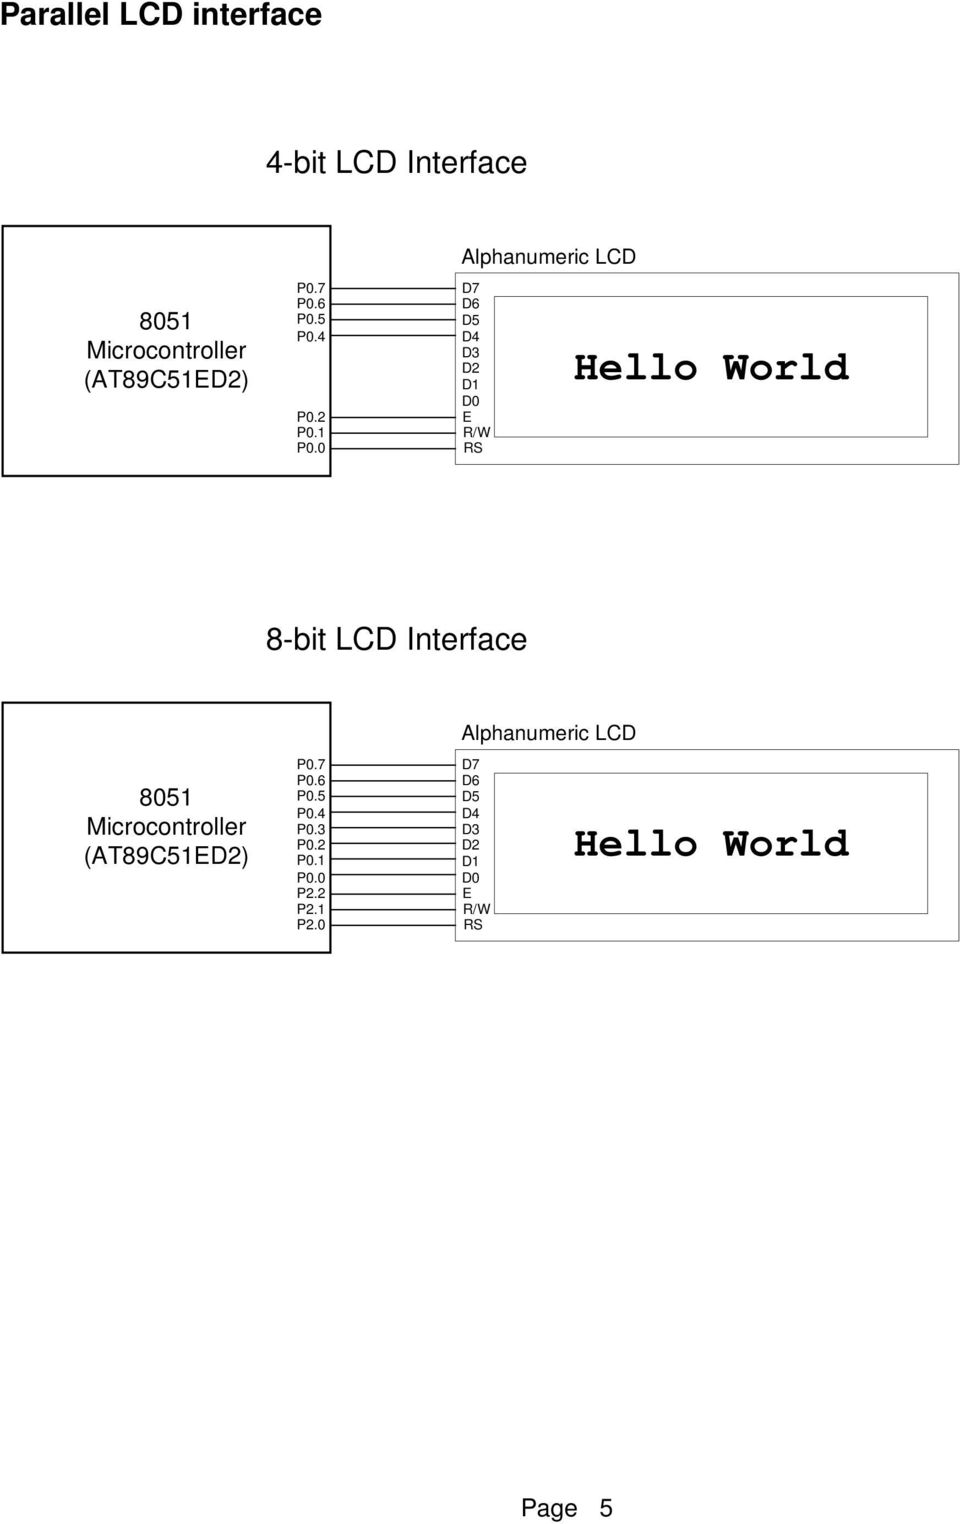 Microcontroller Display Interfacing Techniques Pdf Circuit Diagram To Interface Buzzer With Lpc2148 Arm7 Slicker 0 D7 D6 D5 D4 D3 D2 D1 D0 E R W Rs Hello World 8